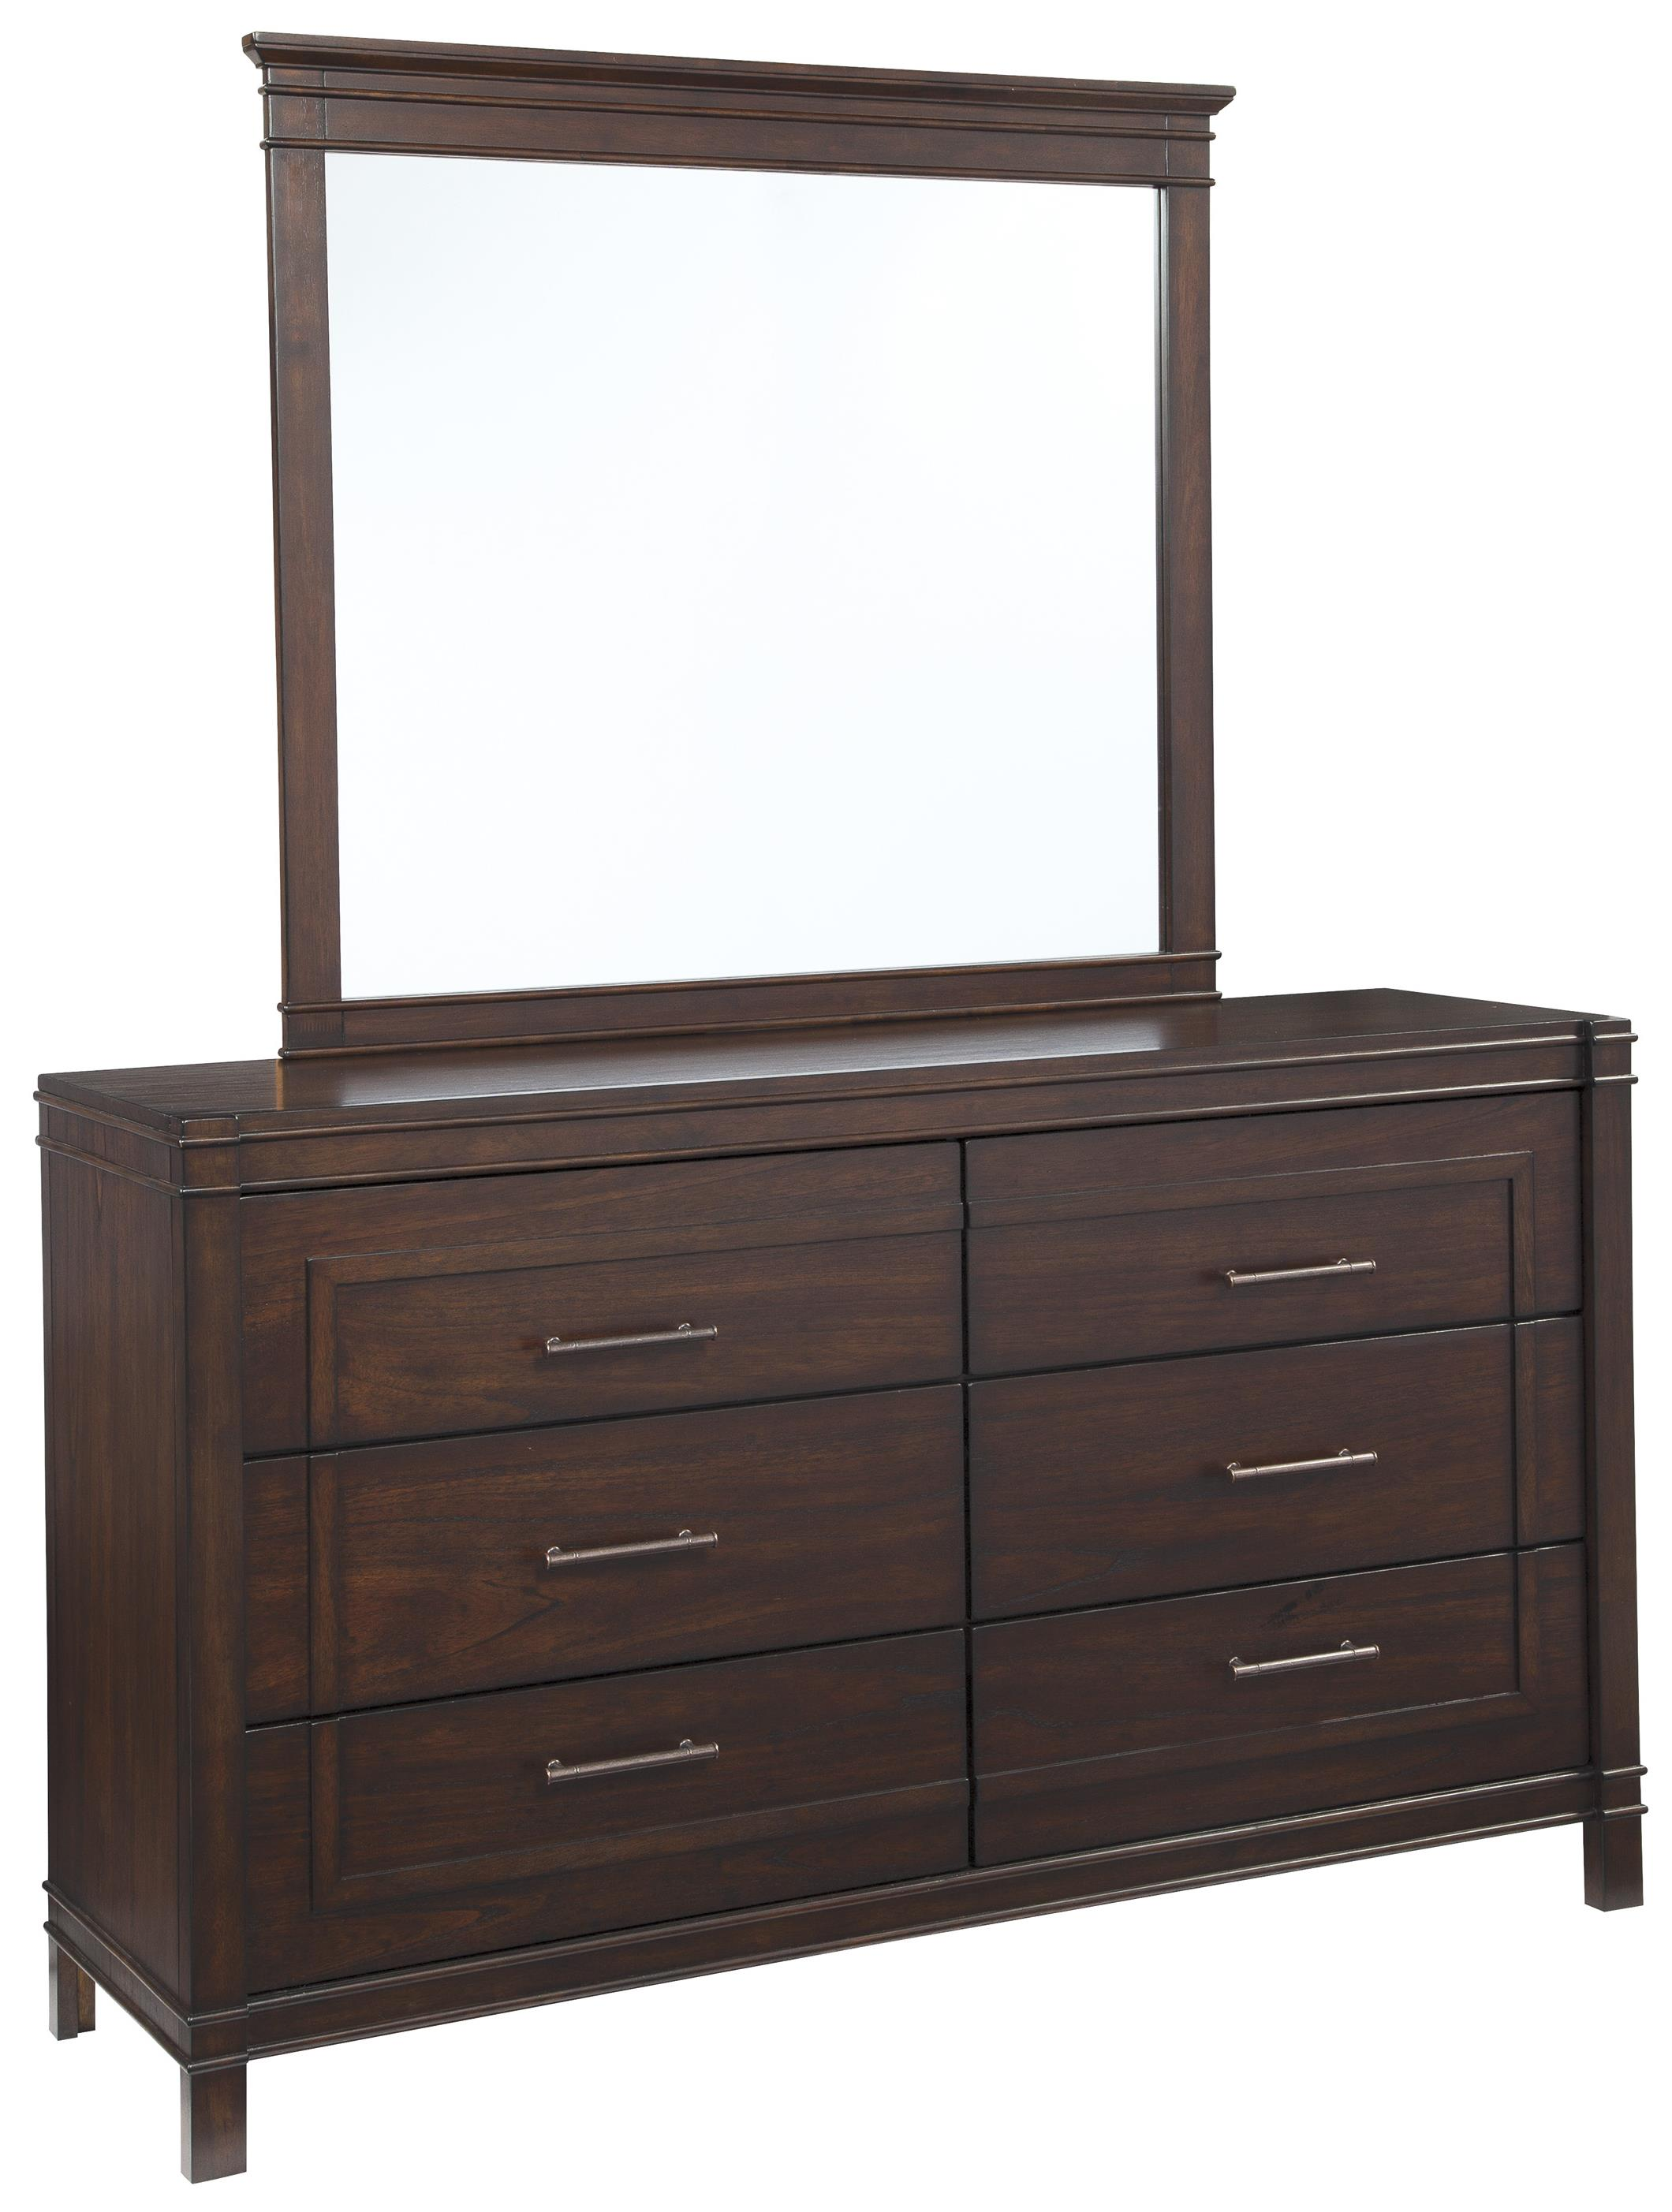 Signature Design by Ashley Timbol Dresser & Bedroom Mirror - Item Number: B508-31+36